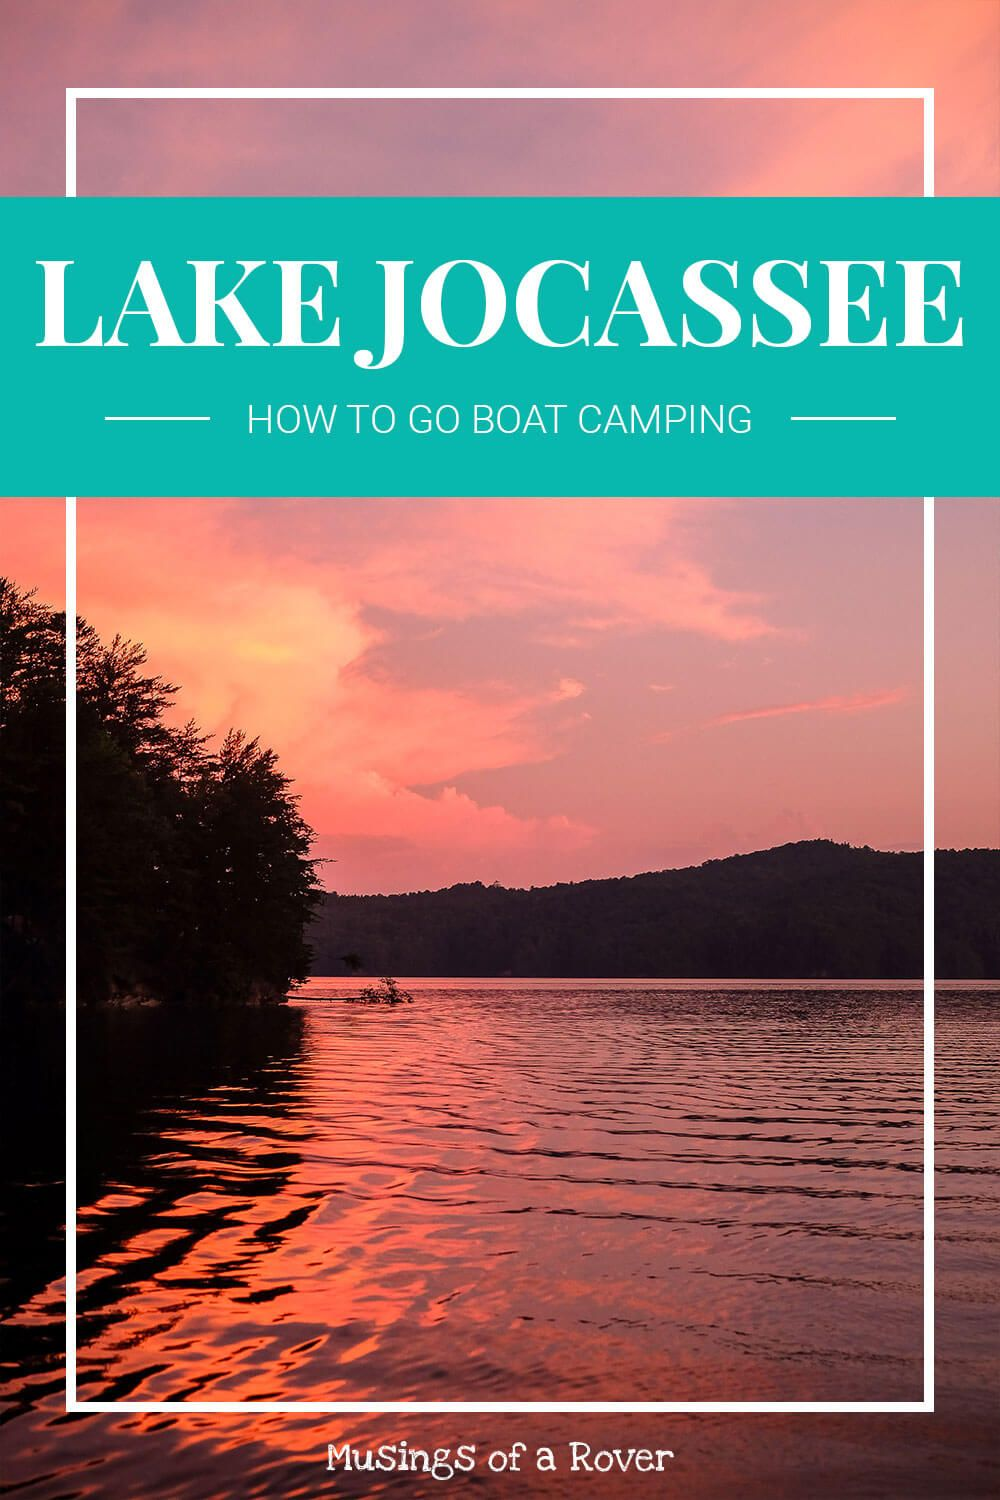 Lake Jocassee is beautiful, clear, and relatively quiet quite lake in the mountains of South Carolina. It also has boat-in campsites. Find out which campsite to reserve and what to expect when you go boat camping here.